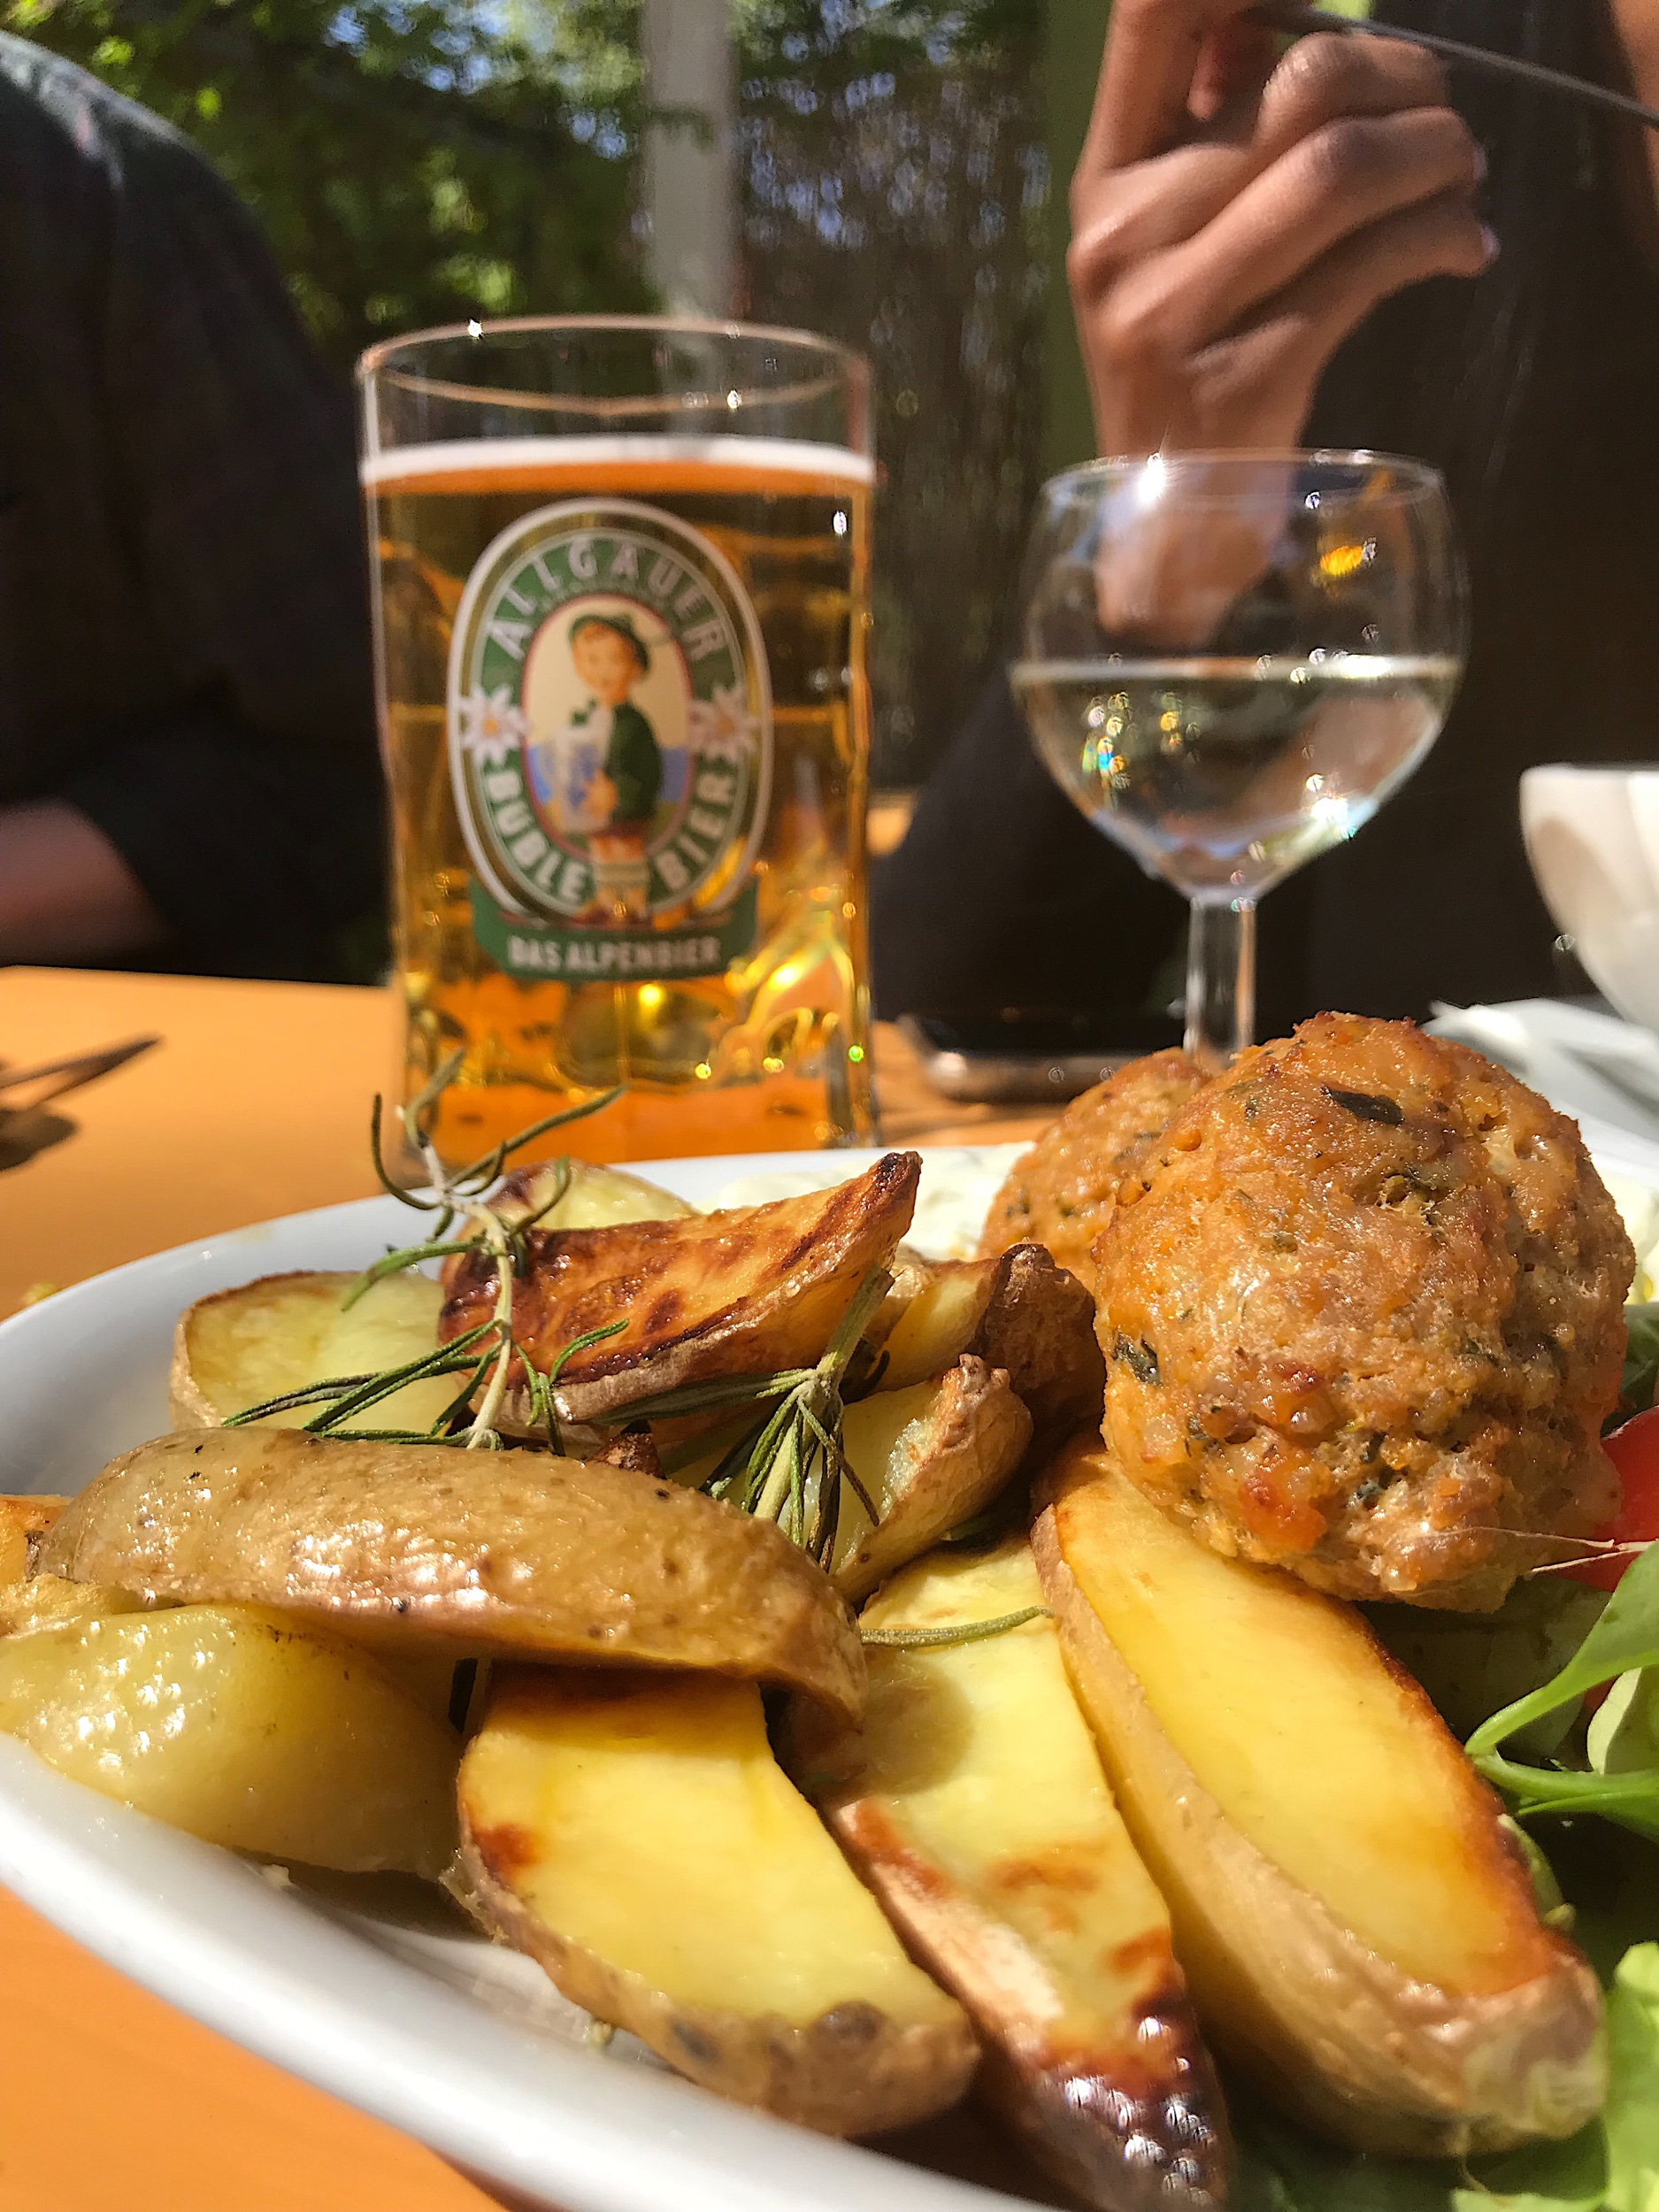 Our lovely tour guide helped me decode the German menu and I went for the 'Bauble' beer with rosemary potatoes & meatballs. It was actually quite good!